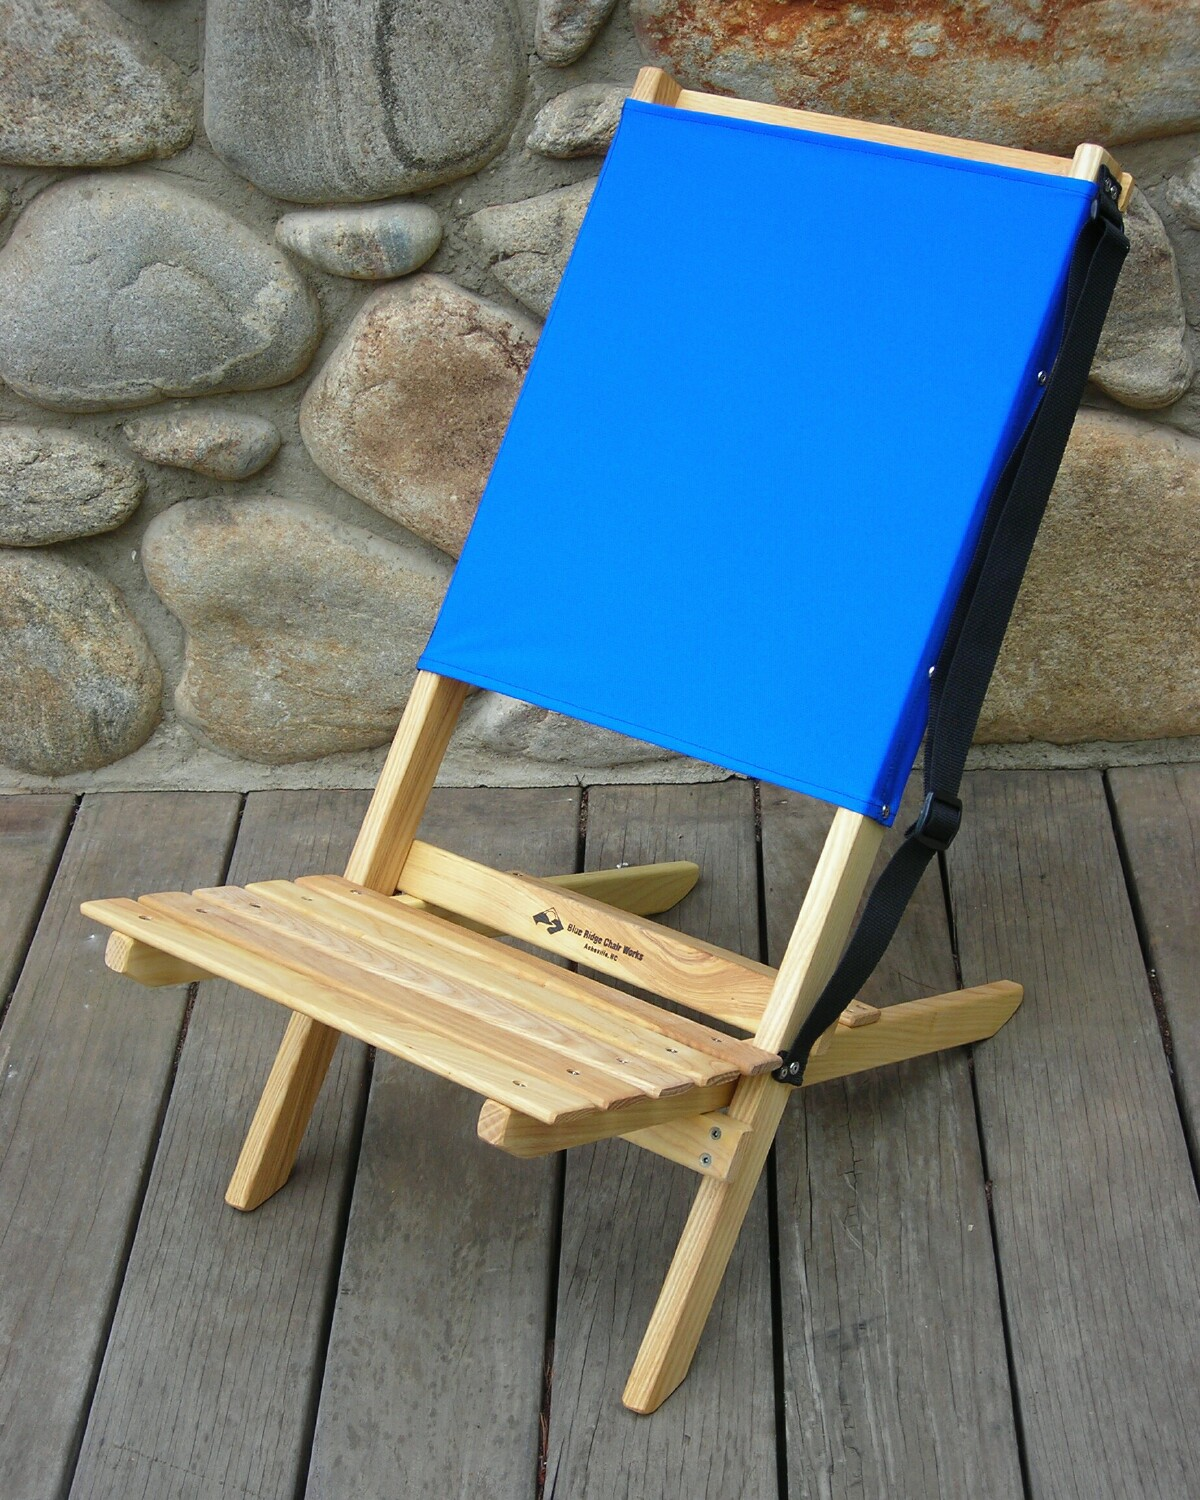 Outdoor Folding and Travel Chairs for camping picnics and everything else